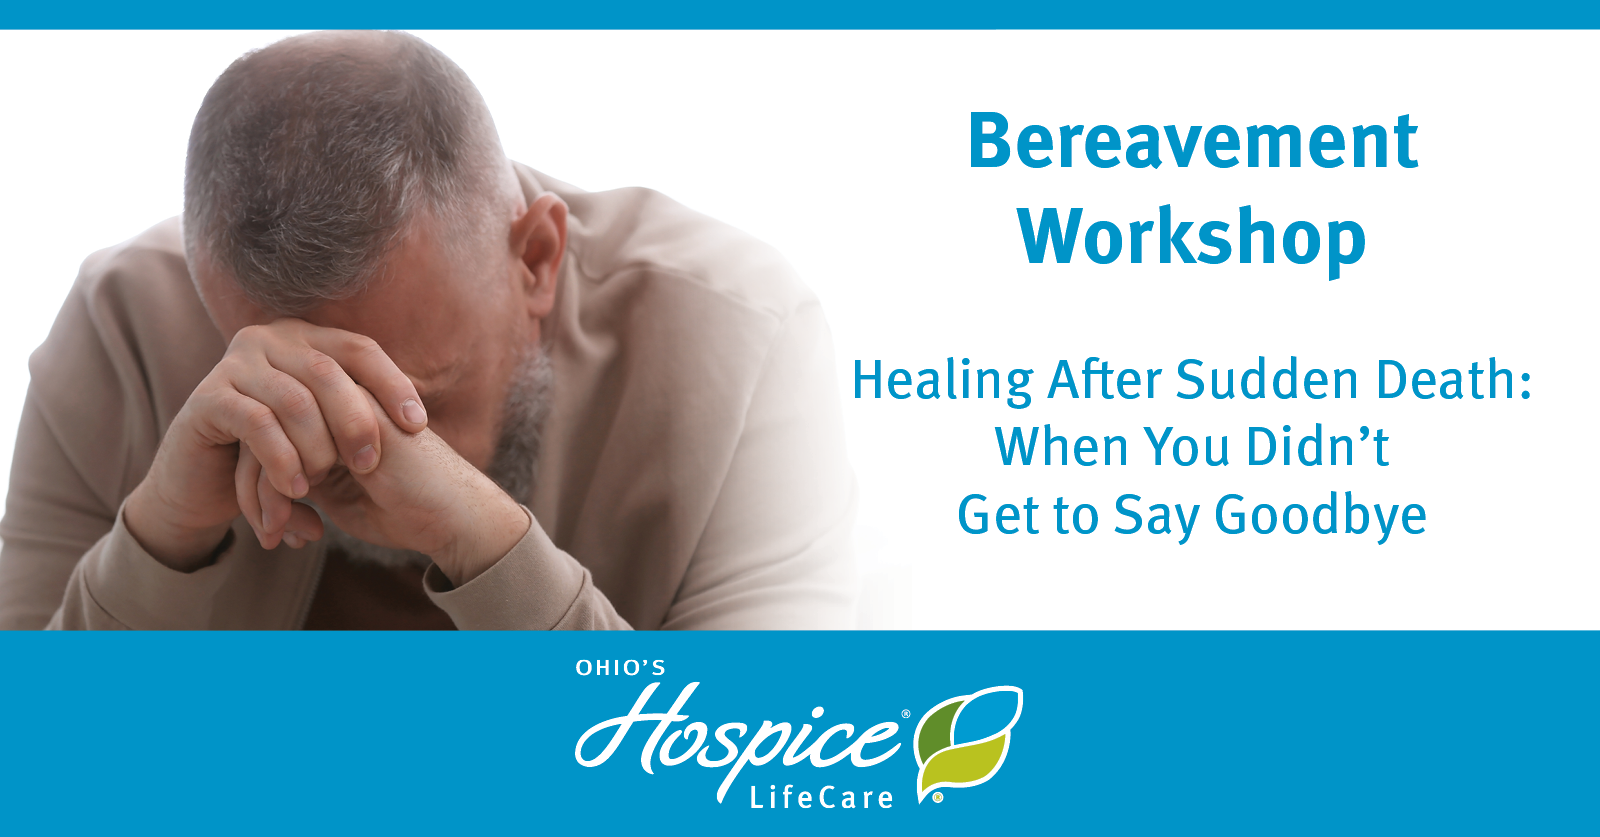 Bereavement Workshop - Healing After Sudden Death: When You Didn't Get To Say Goodbye - Ohio's Hospice LifeCare